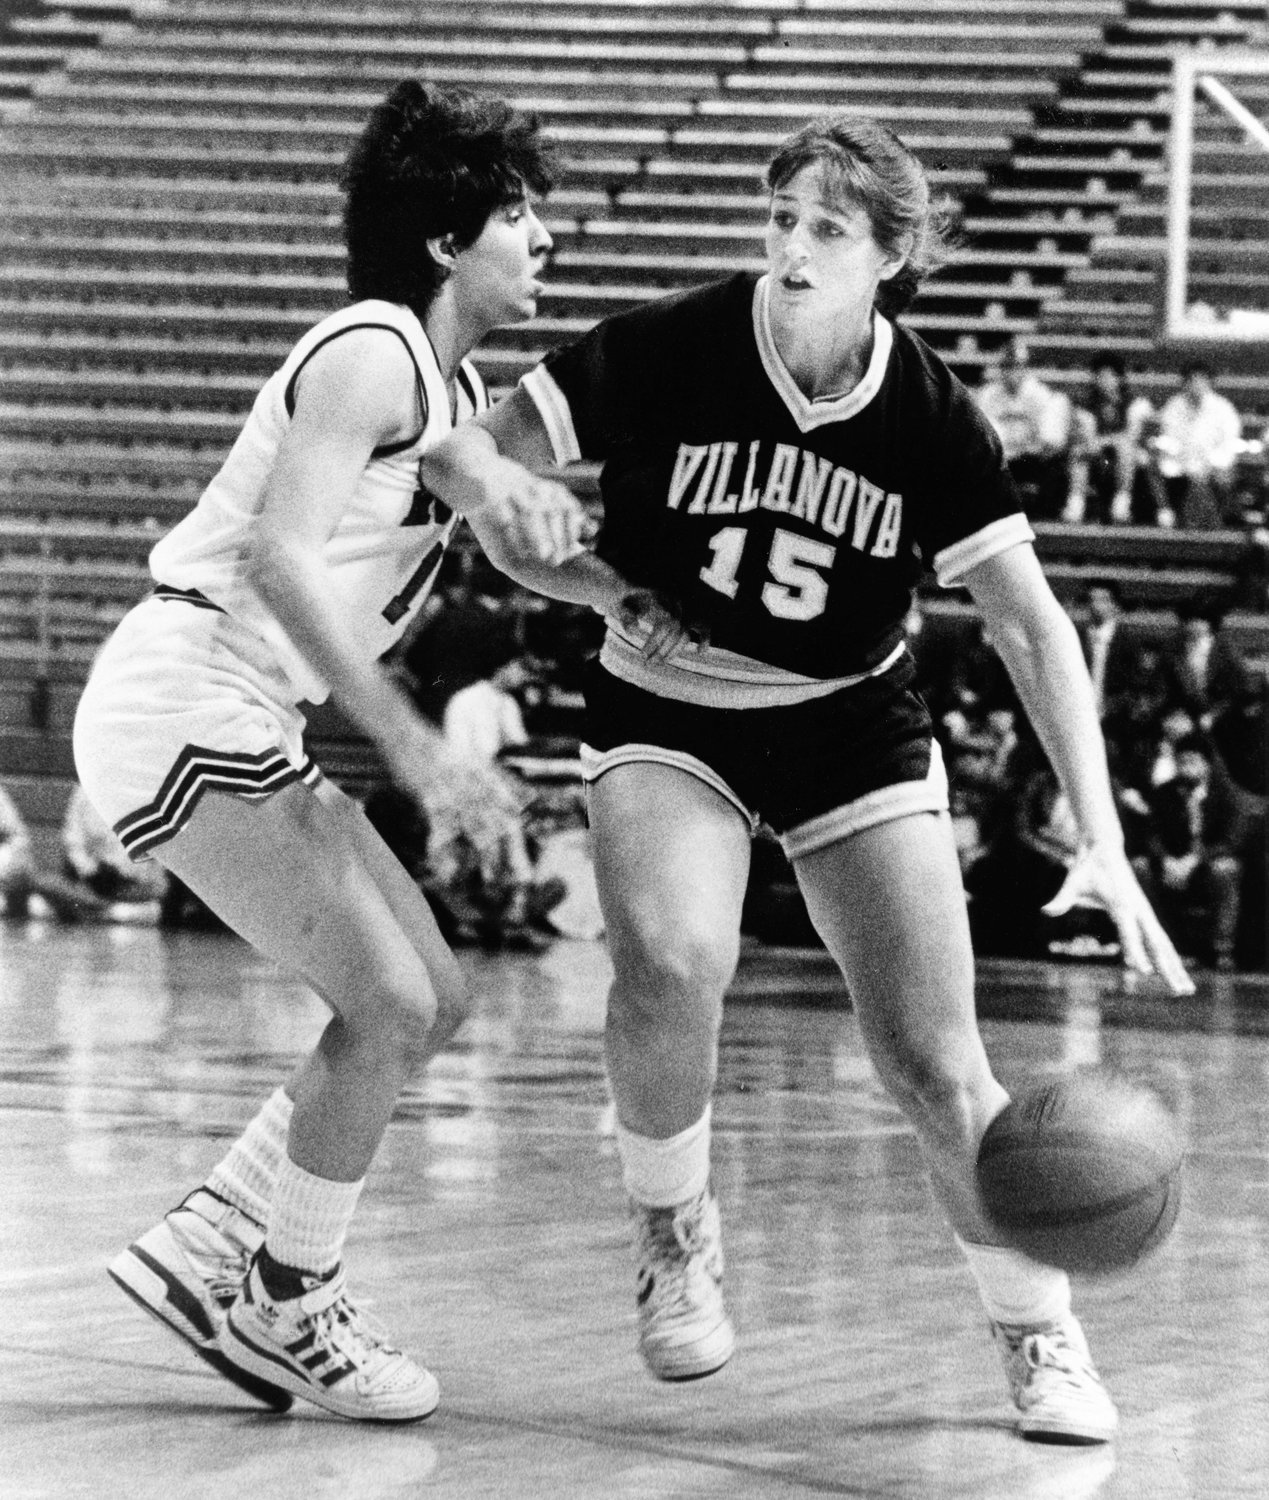 Shelly Pennefather, who later became Sister Rose Marie, a member of the Poor Clare order, is seen during her time as a member of the women's basketball team at Villanova University in Pennsylvania. She celebrated her 25th jubilee at the Poor Clare convent in Alexandria, Va., June 9, 2019.